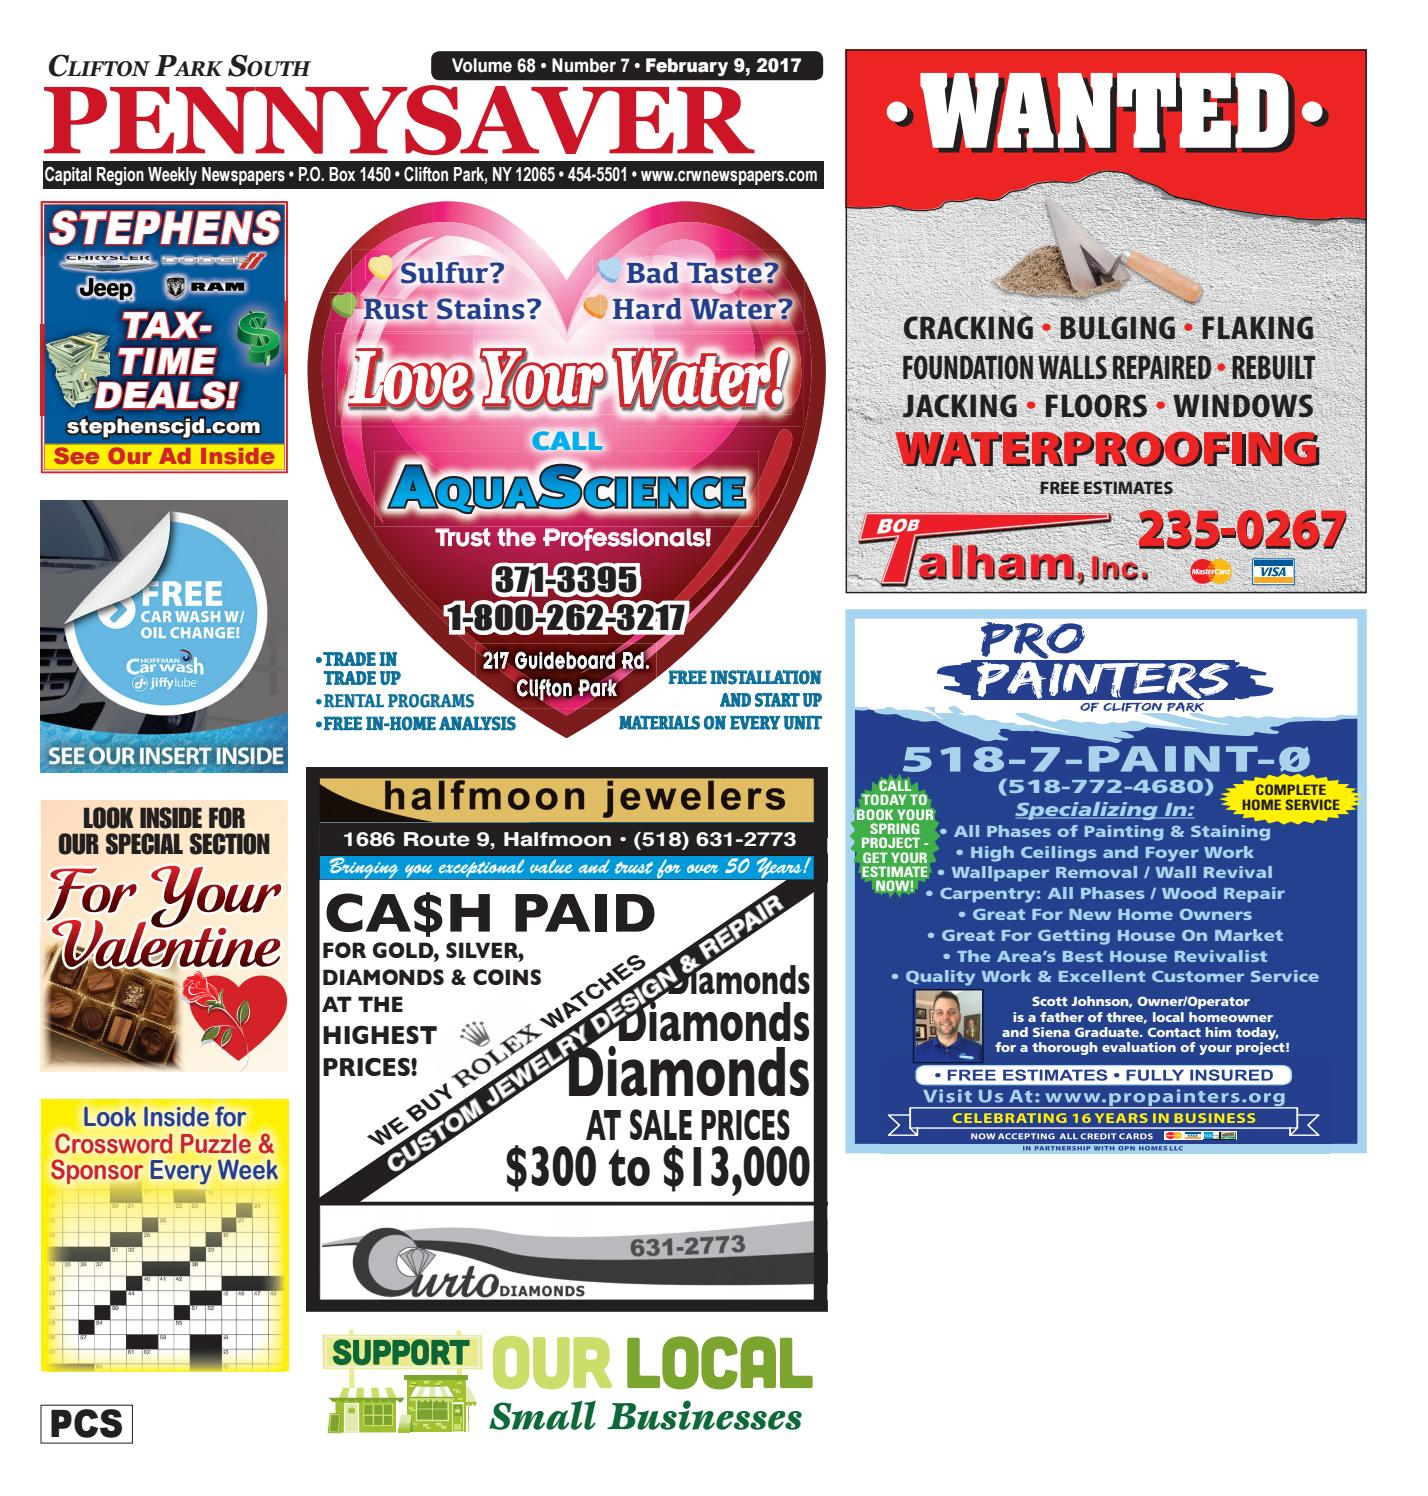 Clifton Park South Pennysaver 020917 By Capital Region Weekly Newspapers Issuu